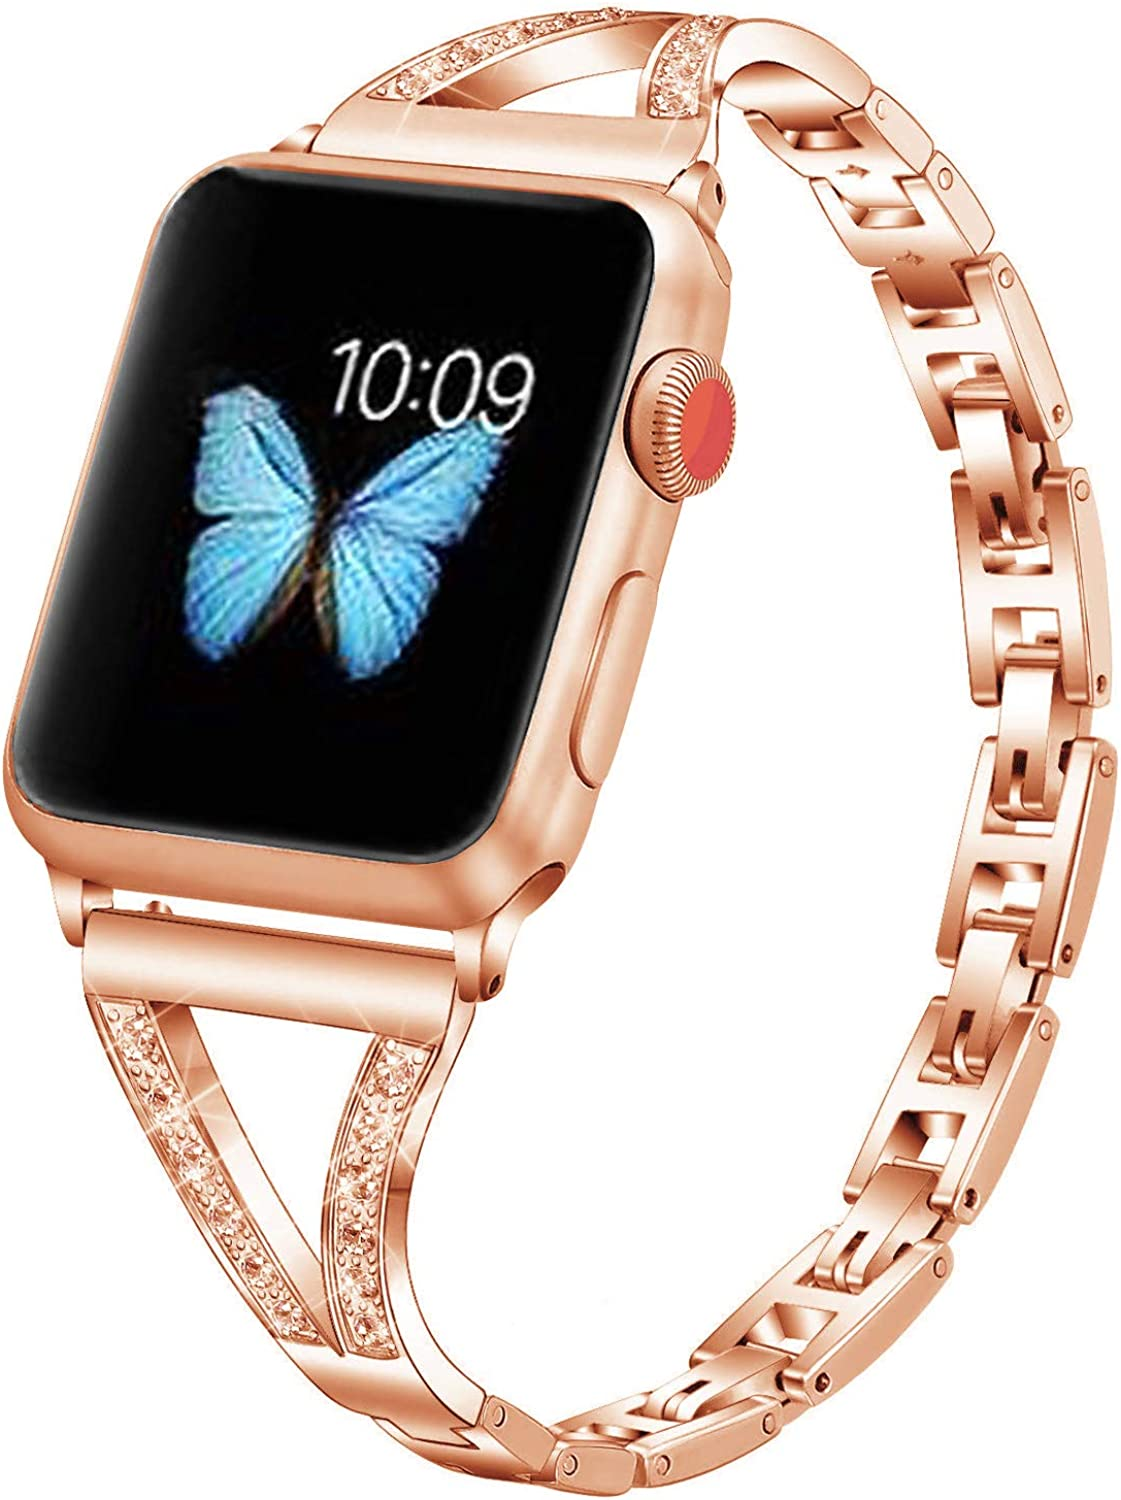 Bling Bands Compatible with Apple Watch Band 38mm 40mm 42mm 44mm,Women Stainless Steel Metal Band Dressy Wristbands Strap Replacement for iWatch Series 6 5 4 3 2 1 SE